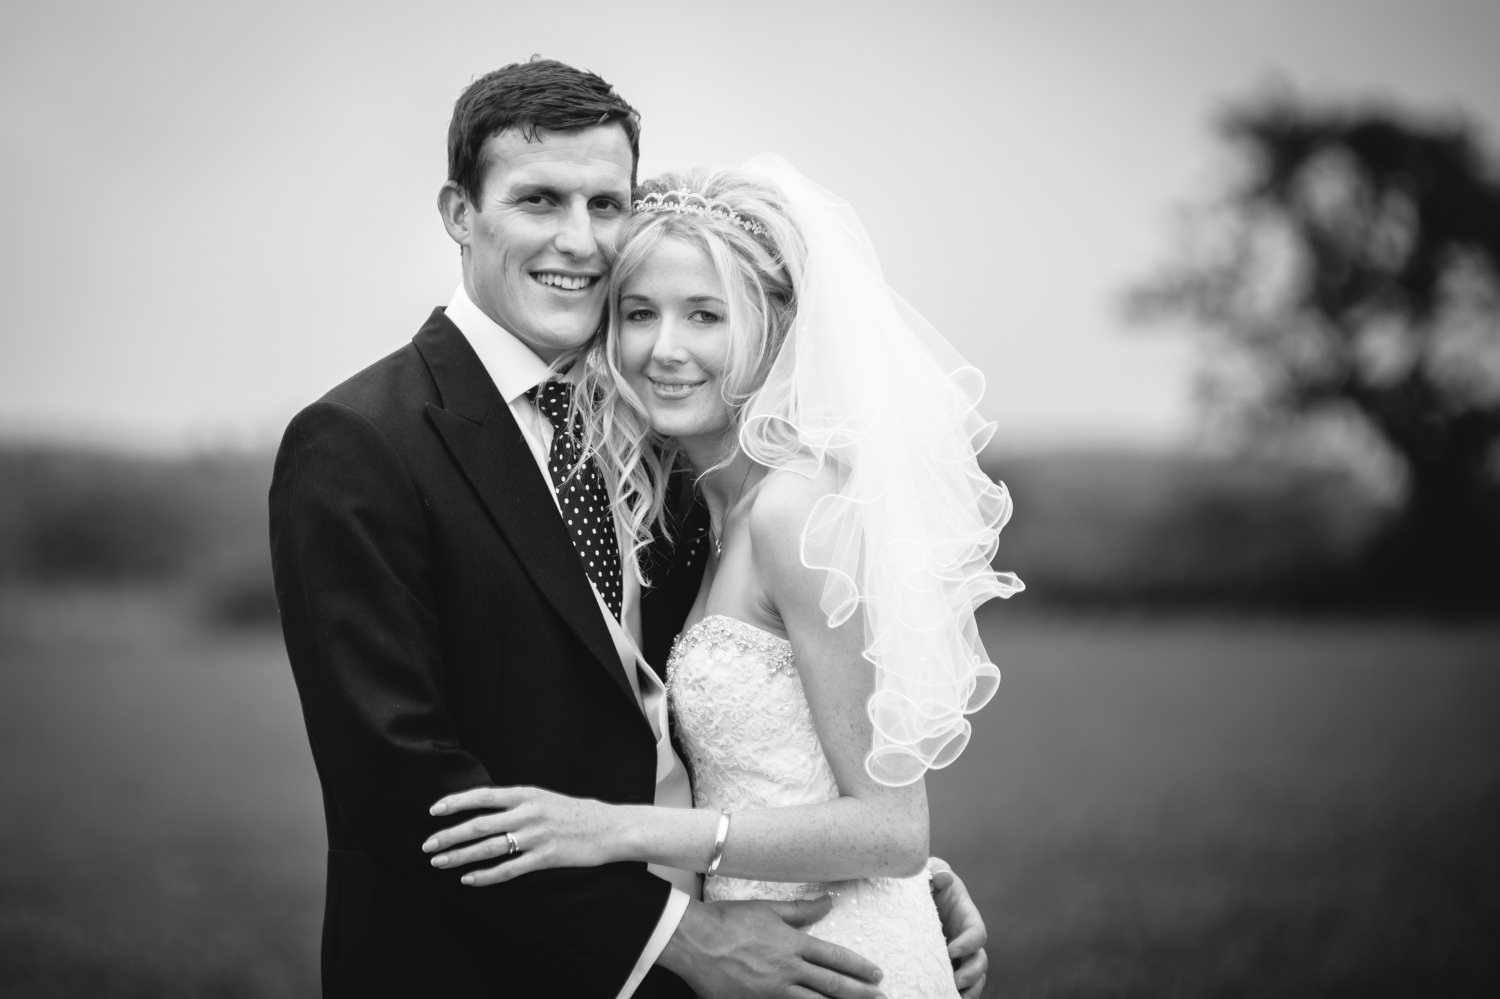 Wedding portrait of bride and groom in Cheshire